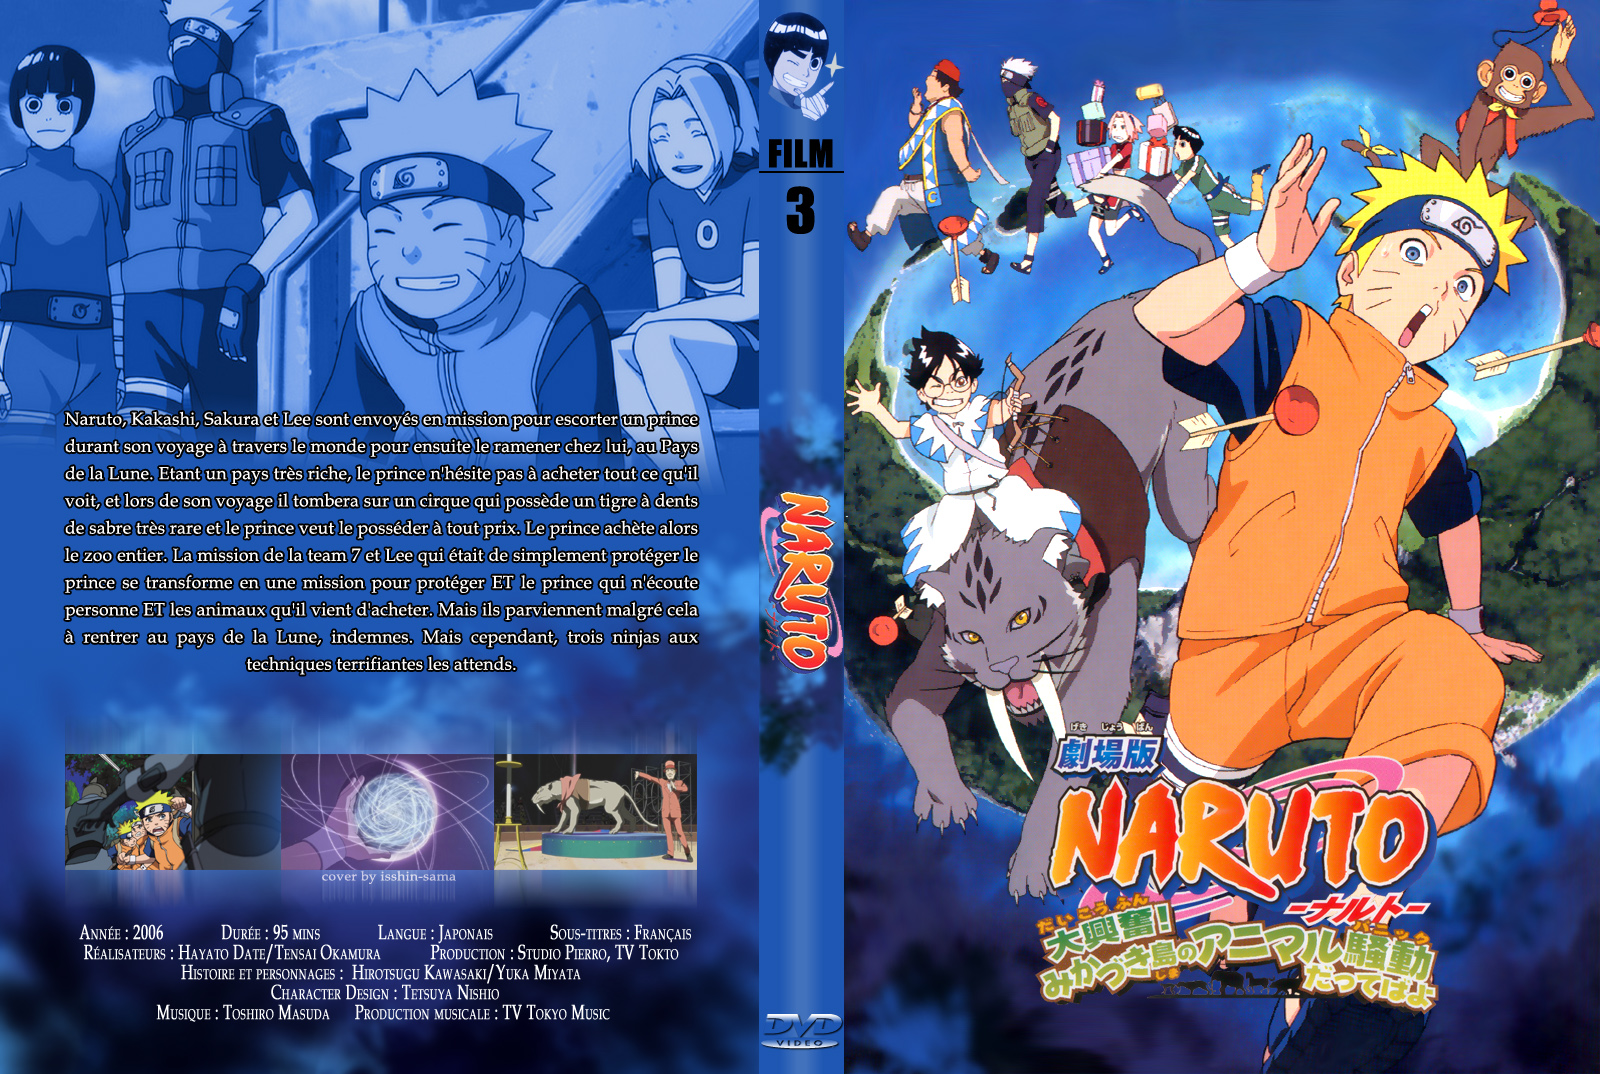 Naruto shippuden the movie 9 master / Watch dogs ps3 1